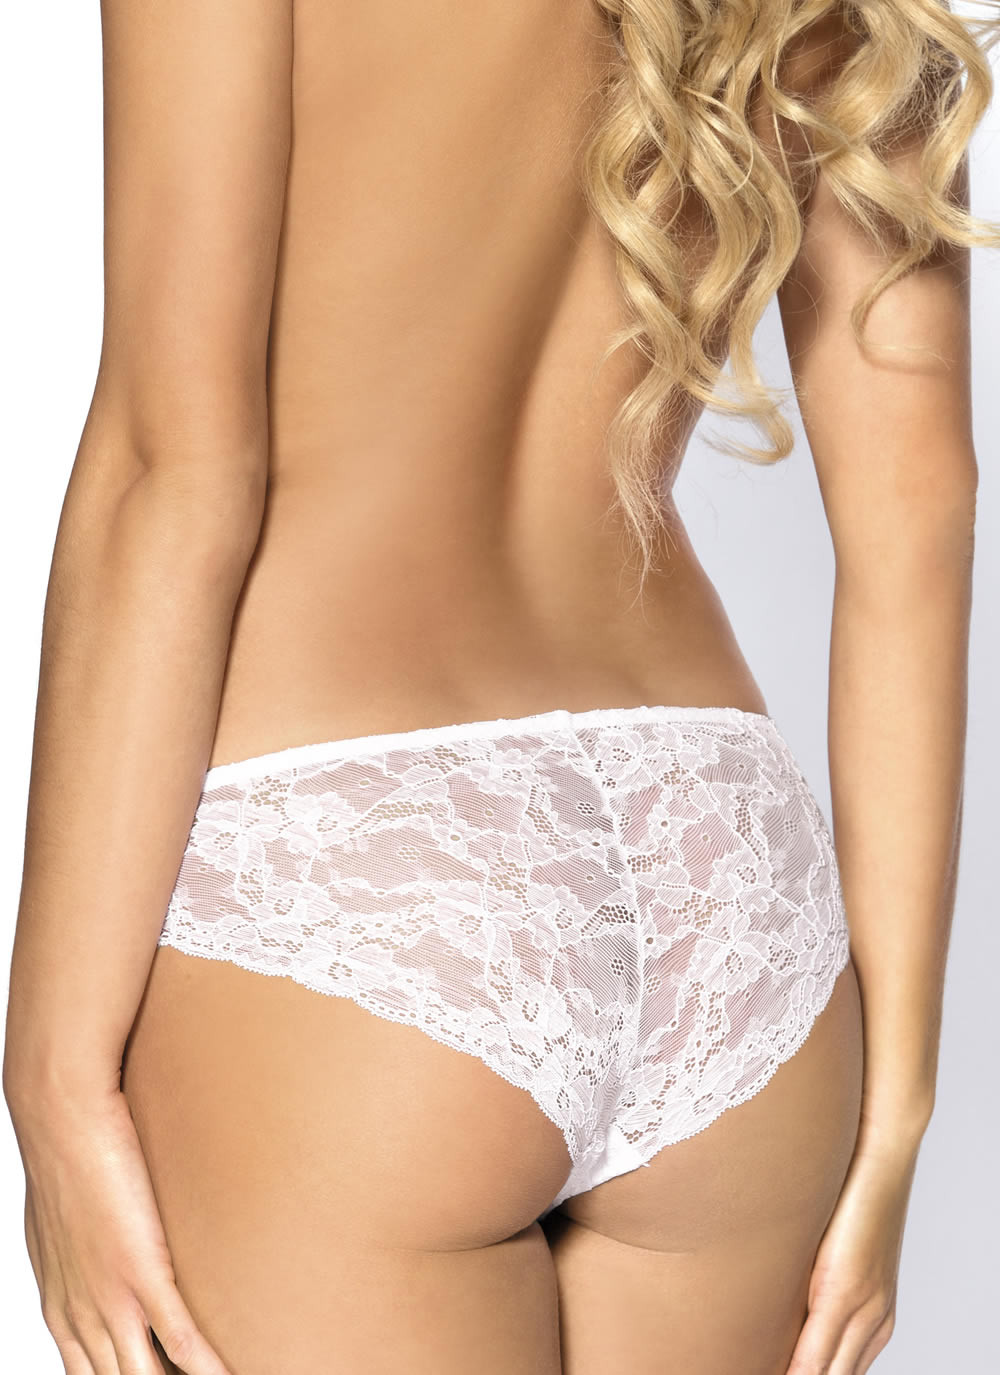 White lace brief panty